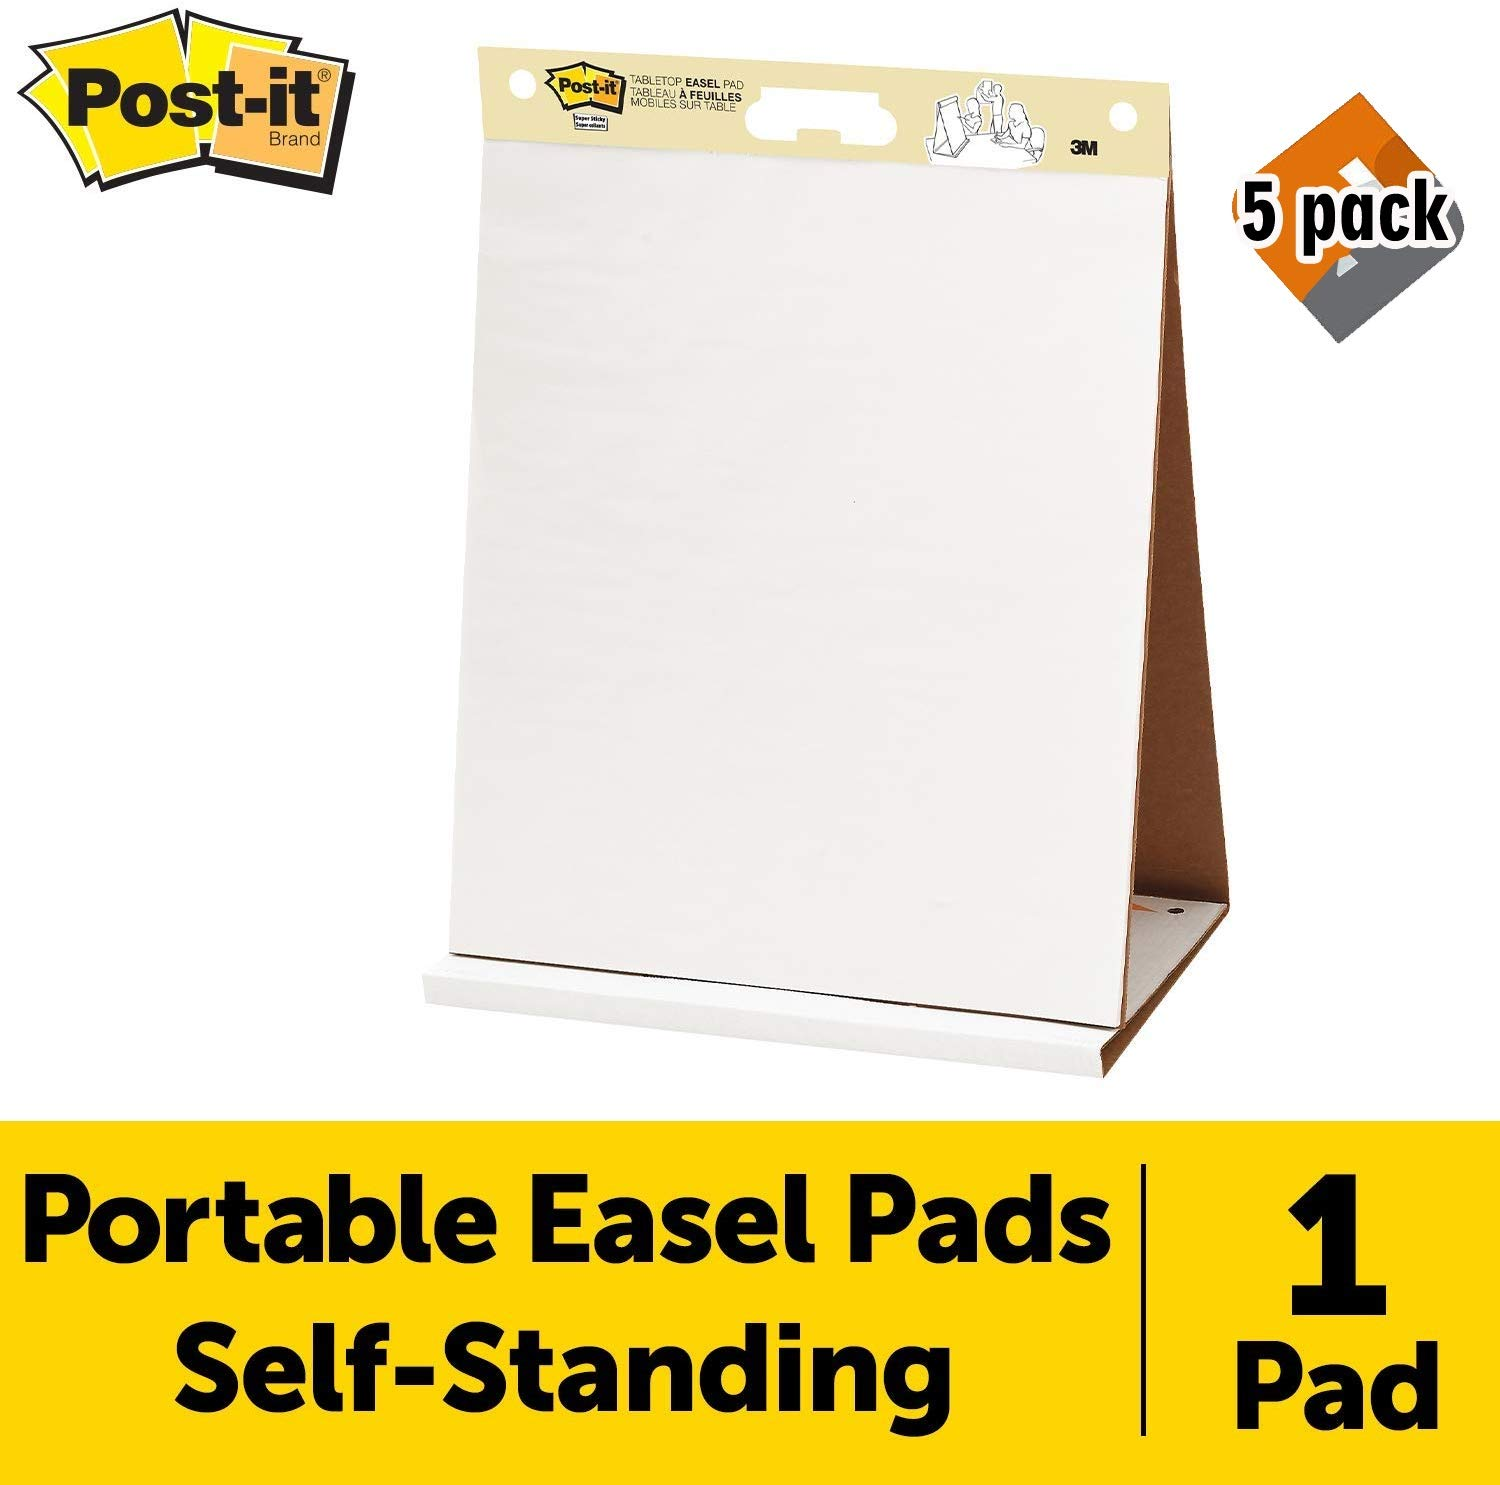 1 Pad 563R 20 Sheets//Pad Post-it Super Sticky Tabletop Easel Pad Pack of 5 Portable White Premium Self Stick Flip Chart Paper Built-in Easel Stand 20 x 23 Inches